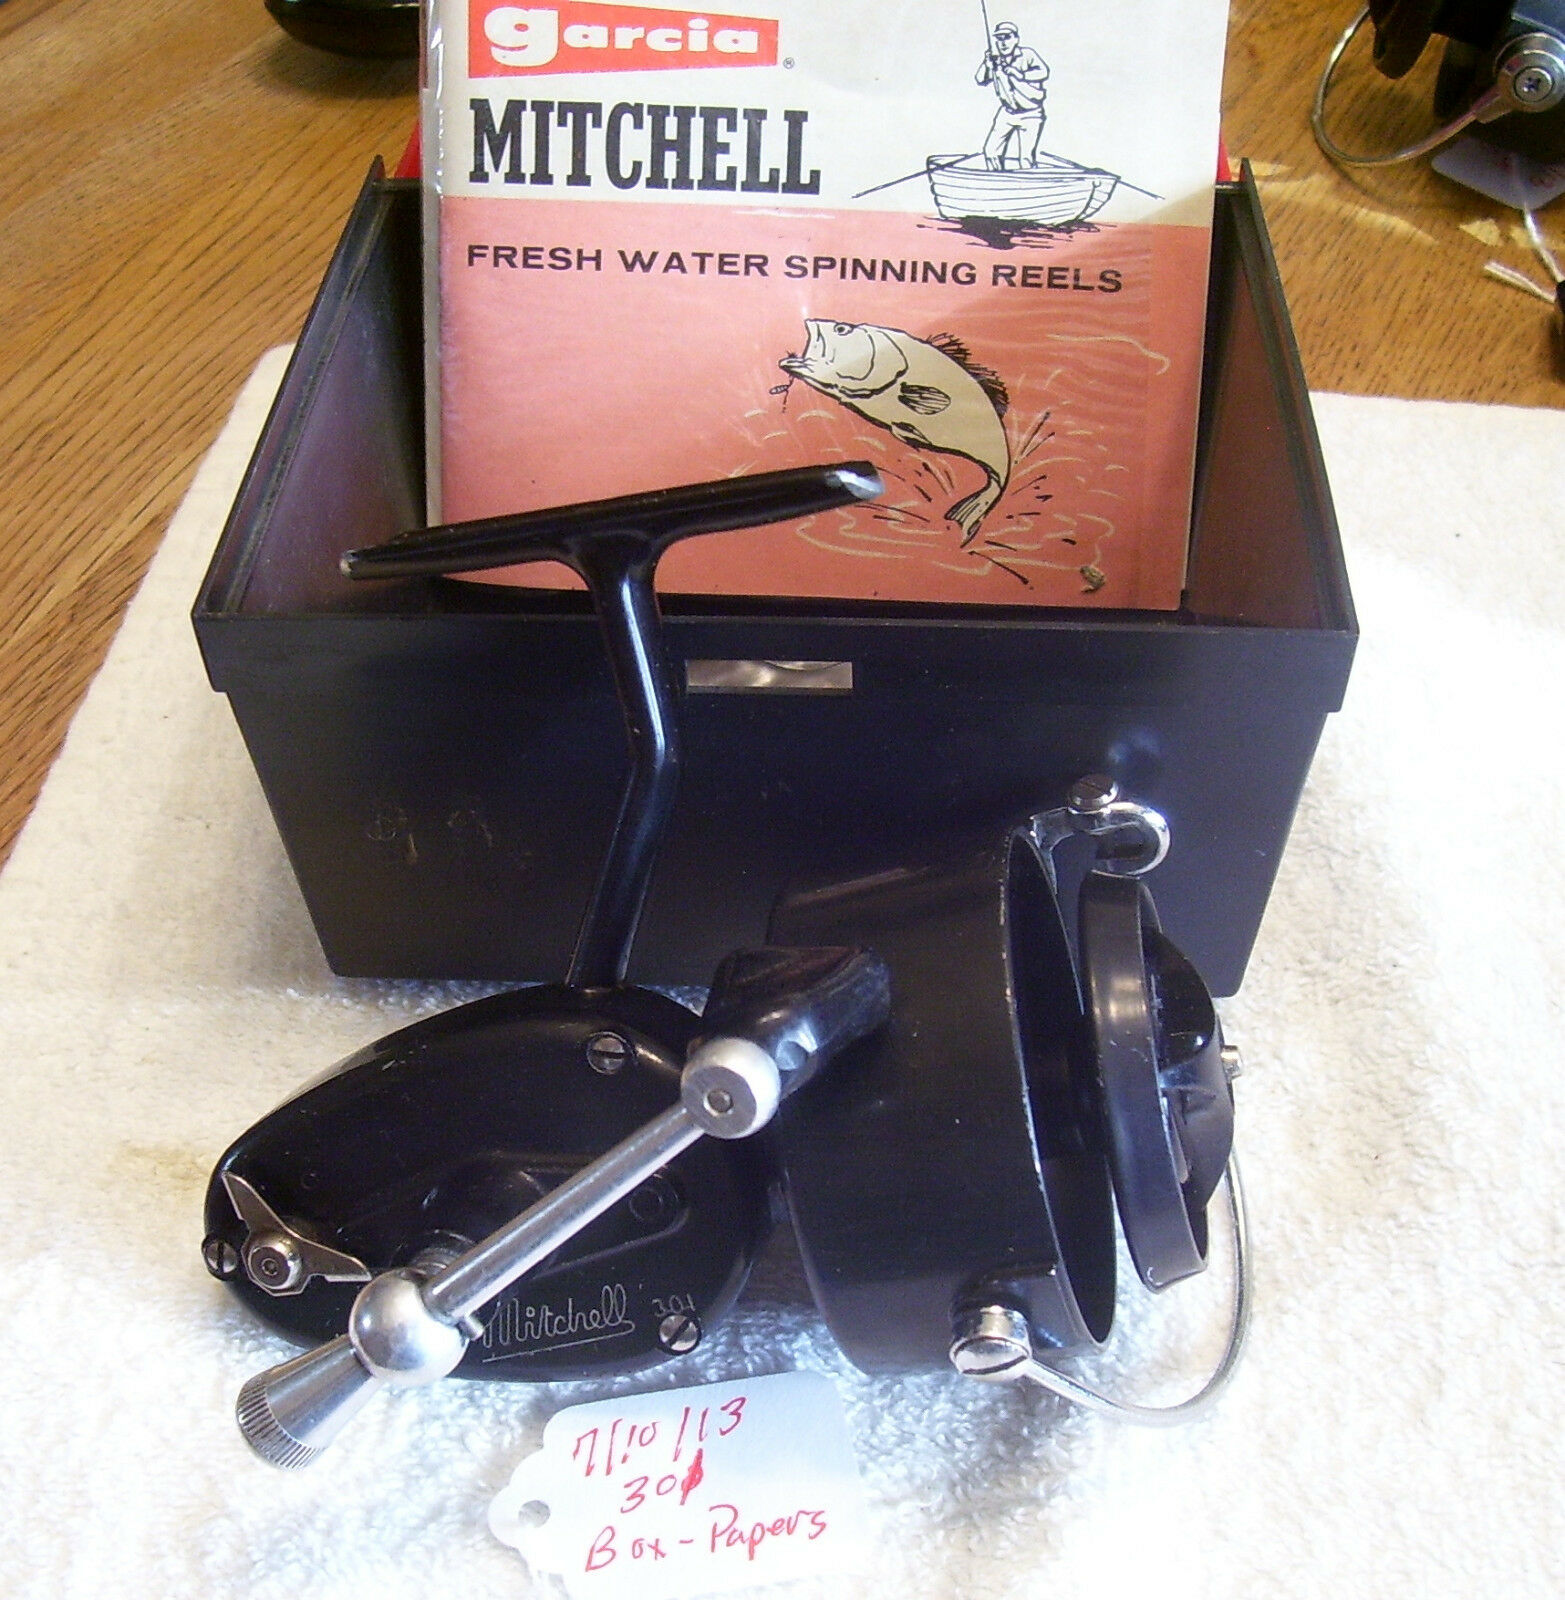 MITCHELL 301 PLUS BOX, PAPERS  REEL   7 10 13  NICE  SEE ALL PICS